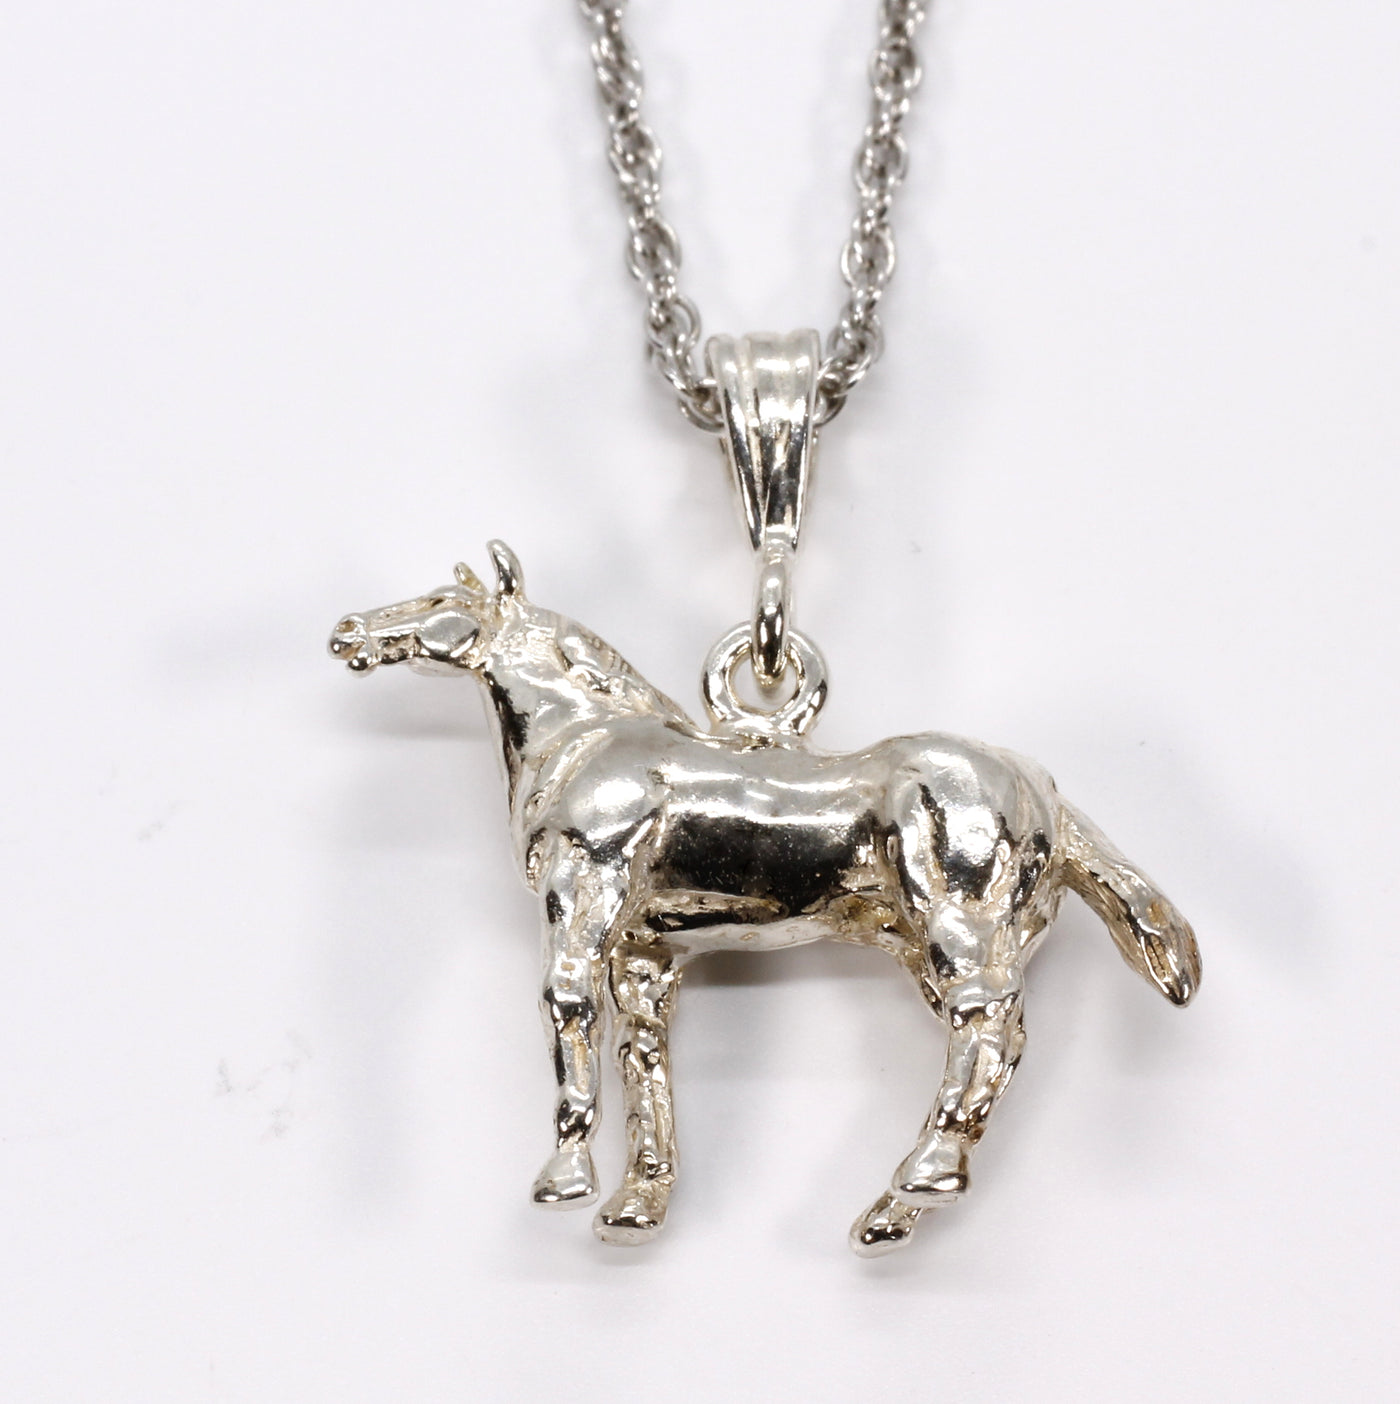 7//8 inch tall Sterling Silver Goat Pendant